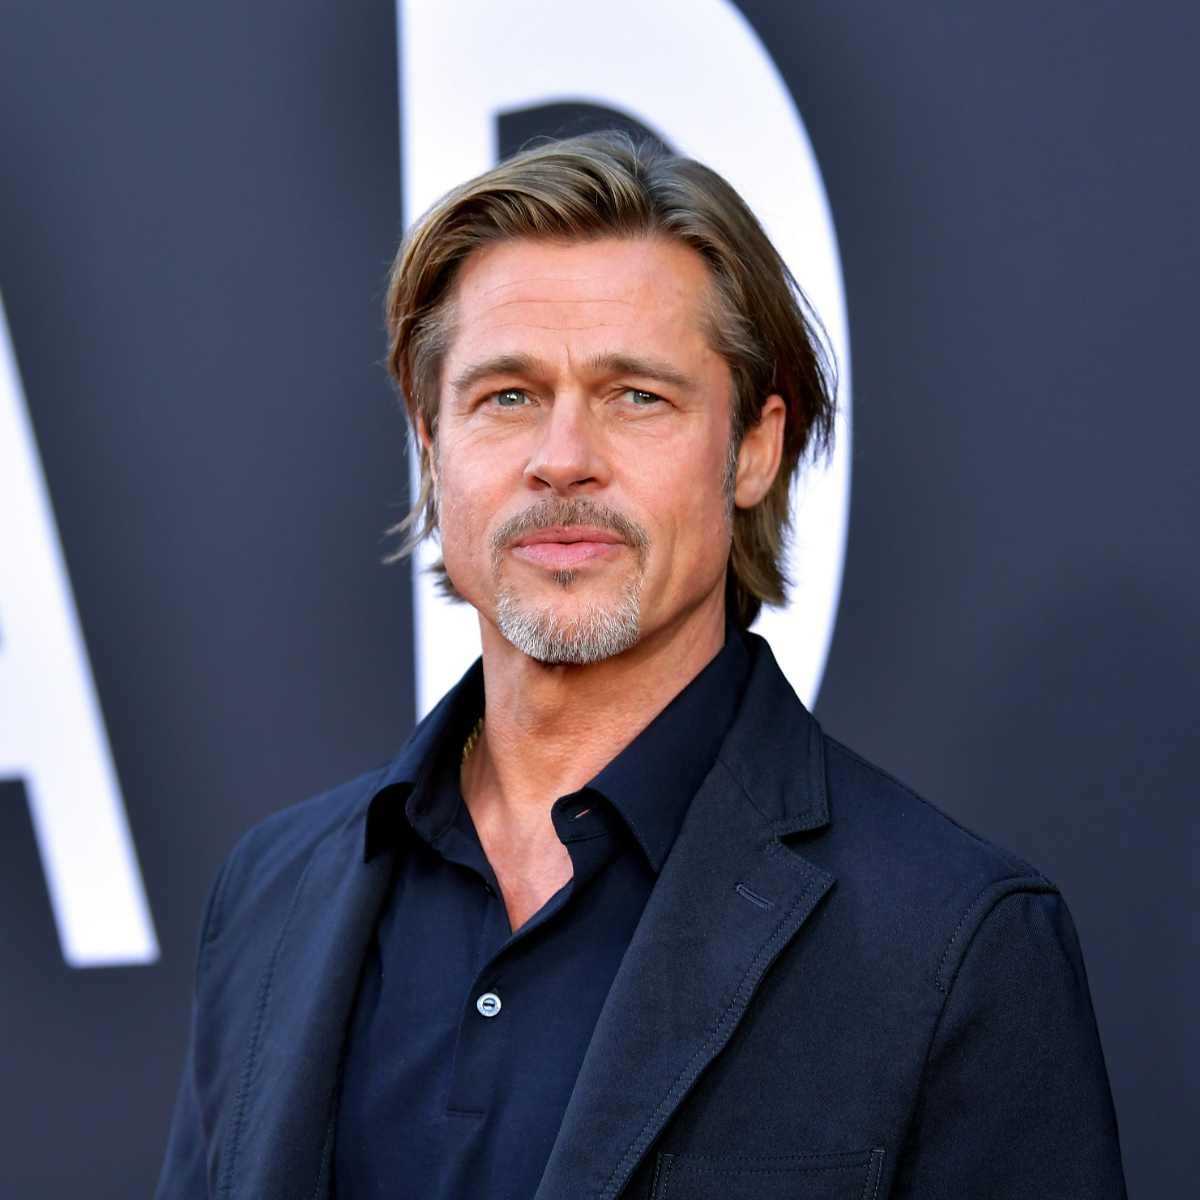 Brad Pitt feels 'a breakup of a family is certainly an eye opener' after his split from Angelina Jolie